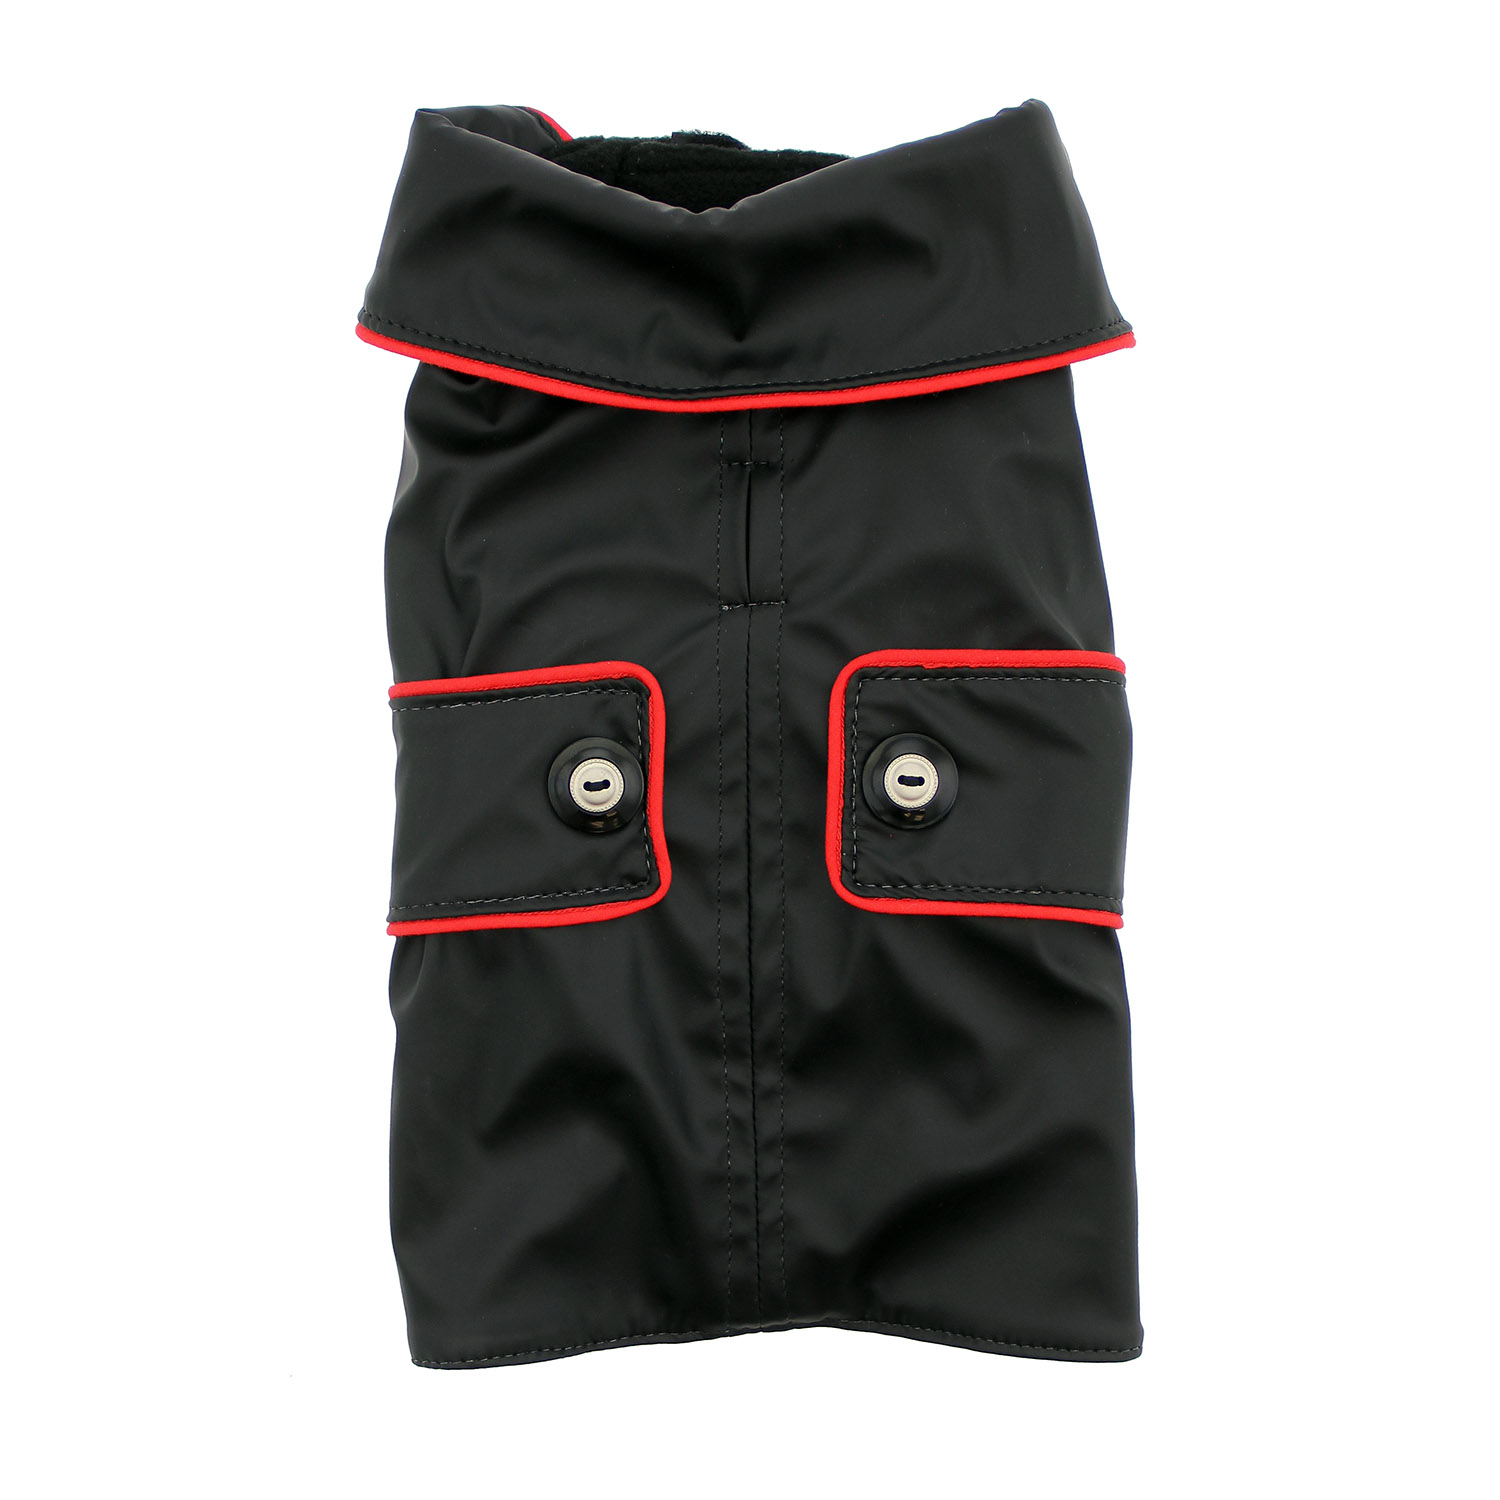 Doggy Wrappers Neo-Tech Fleece Dog Coat - Black with Red Piping